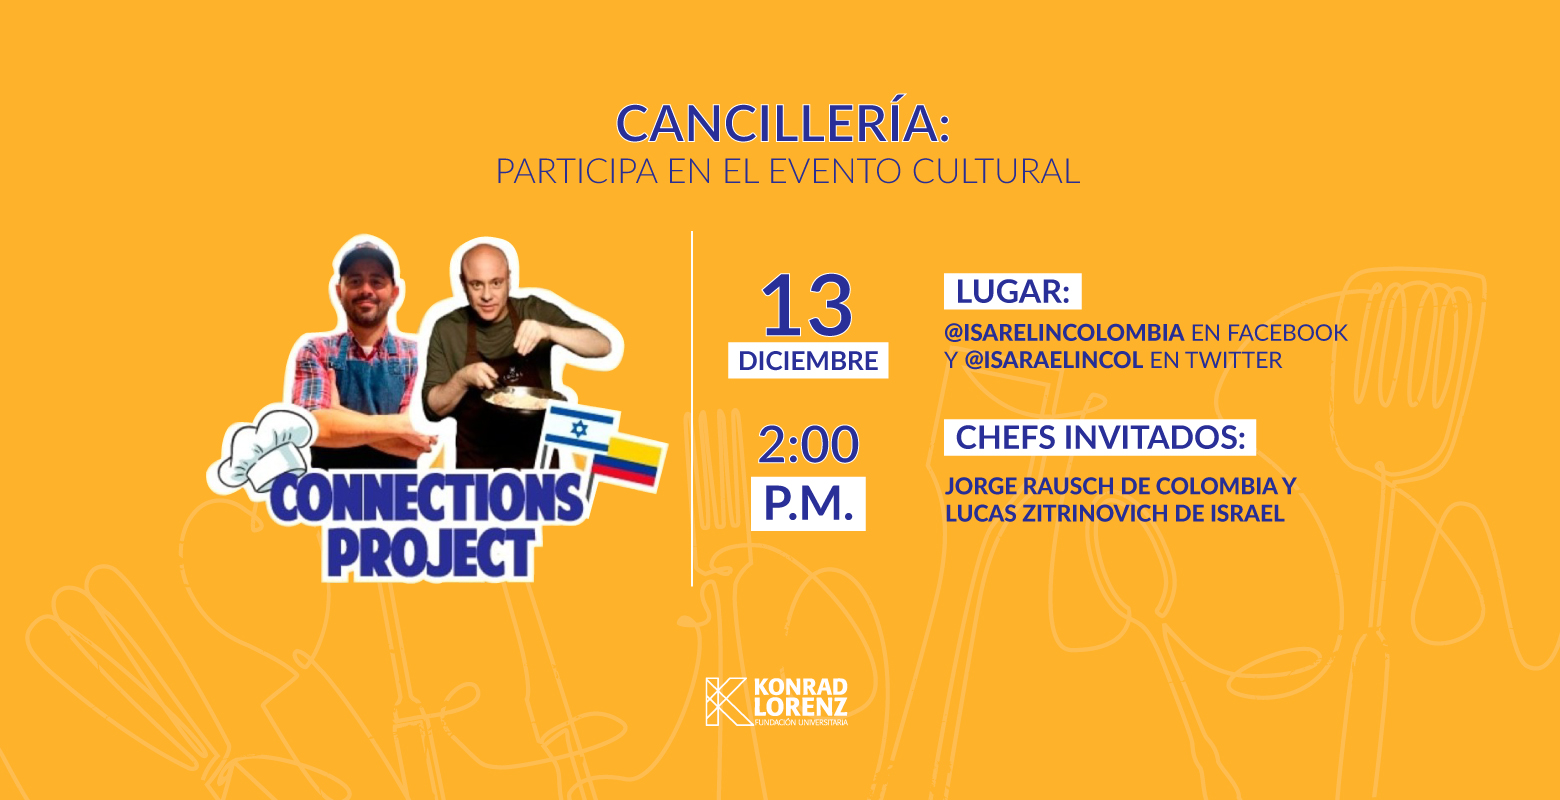 Cancillería: Participa en el Evento Cultural Connections Project